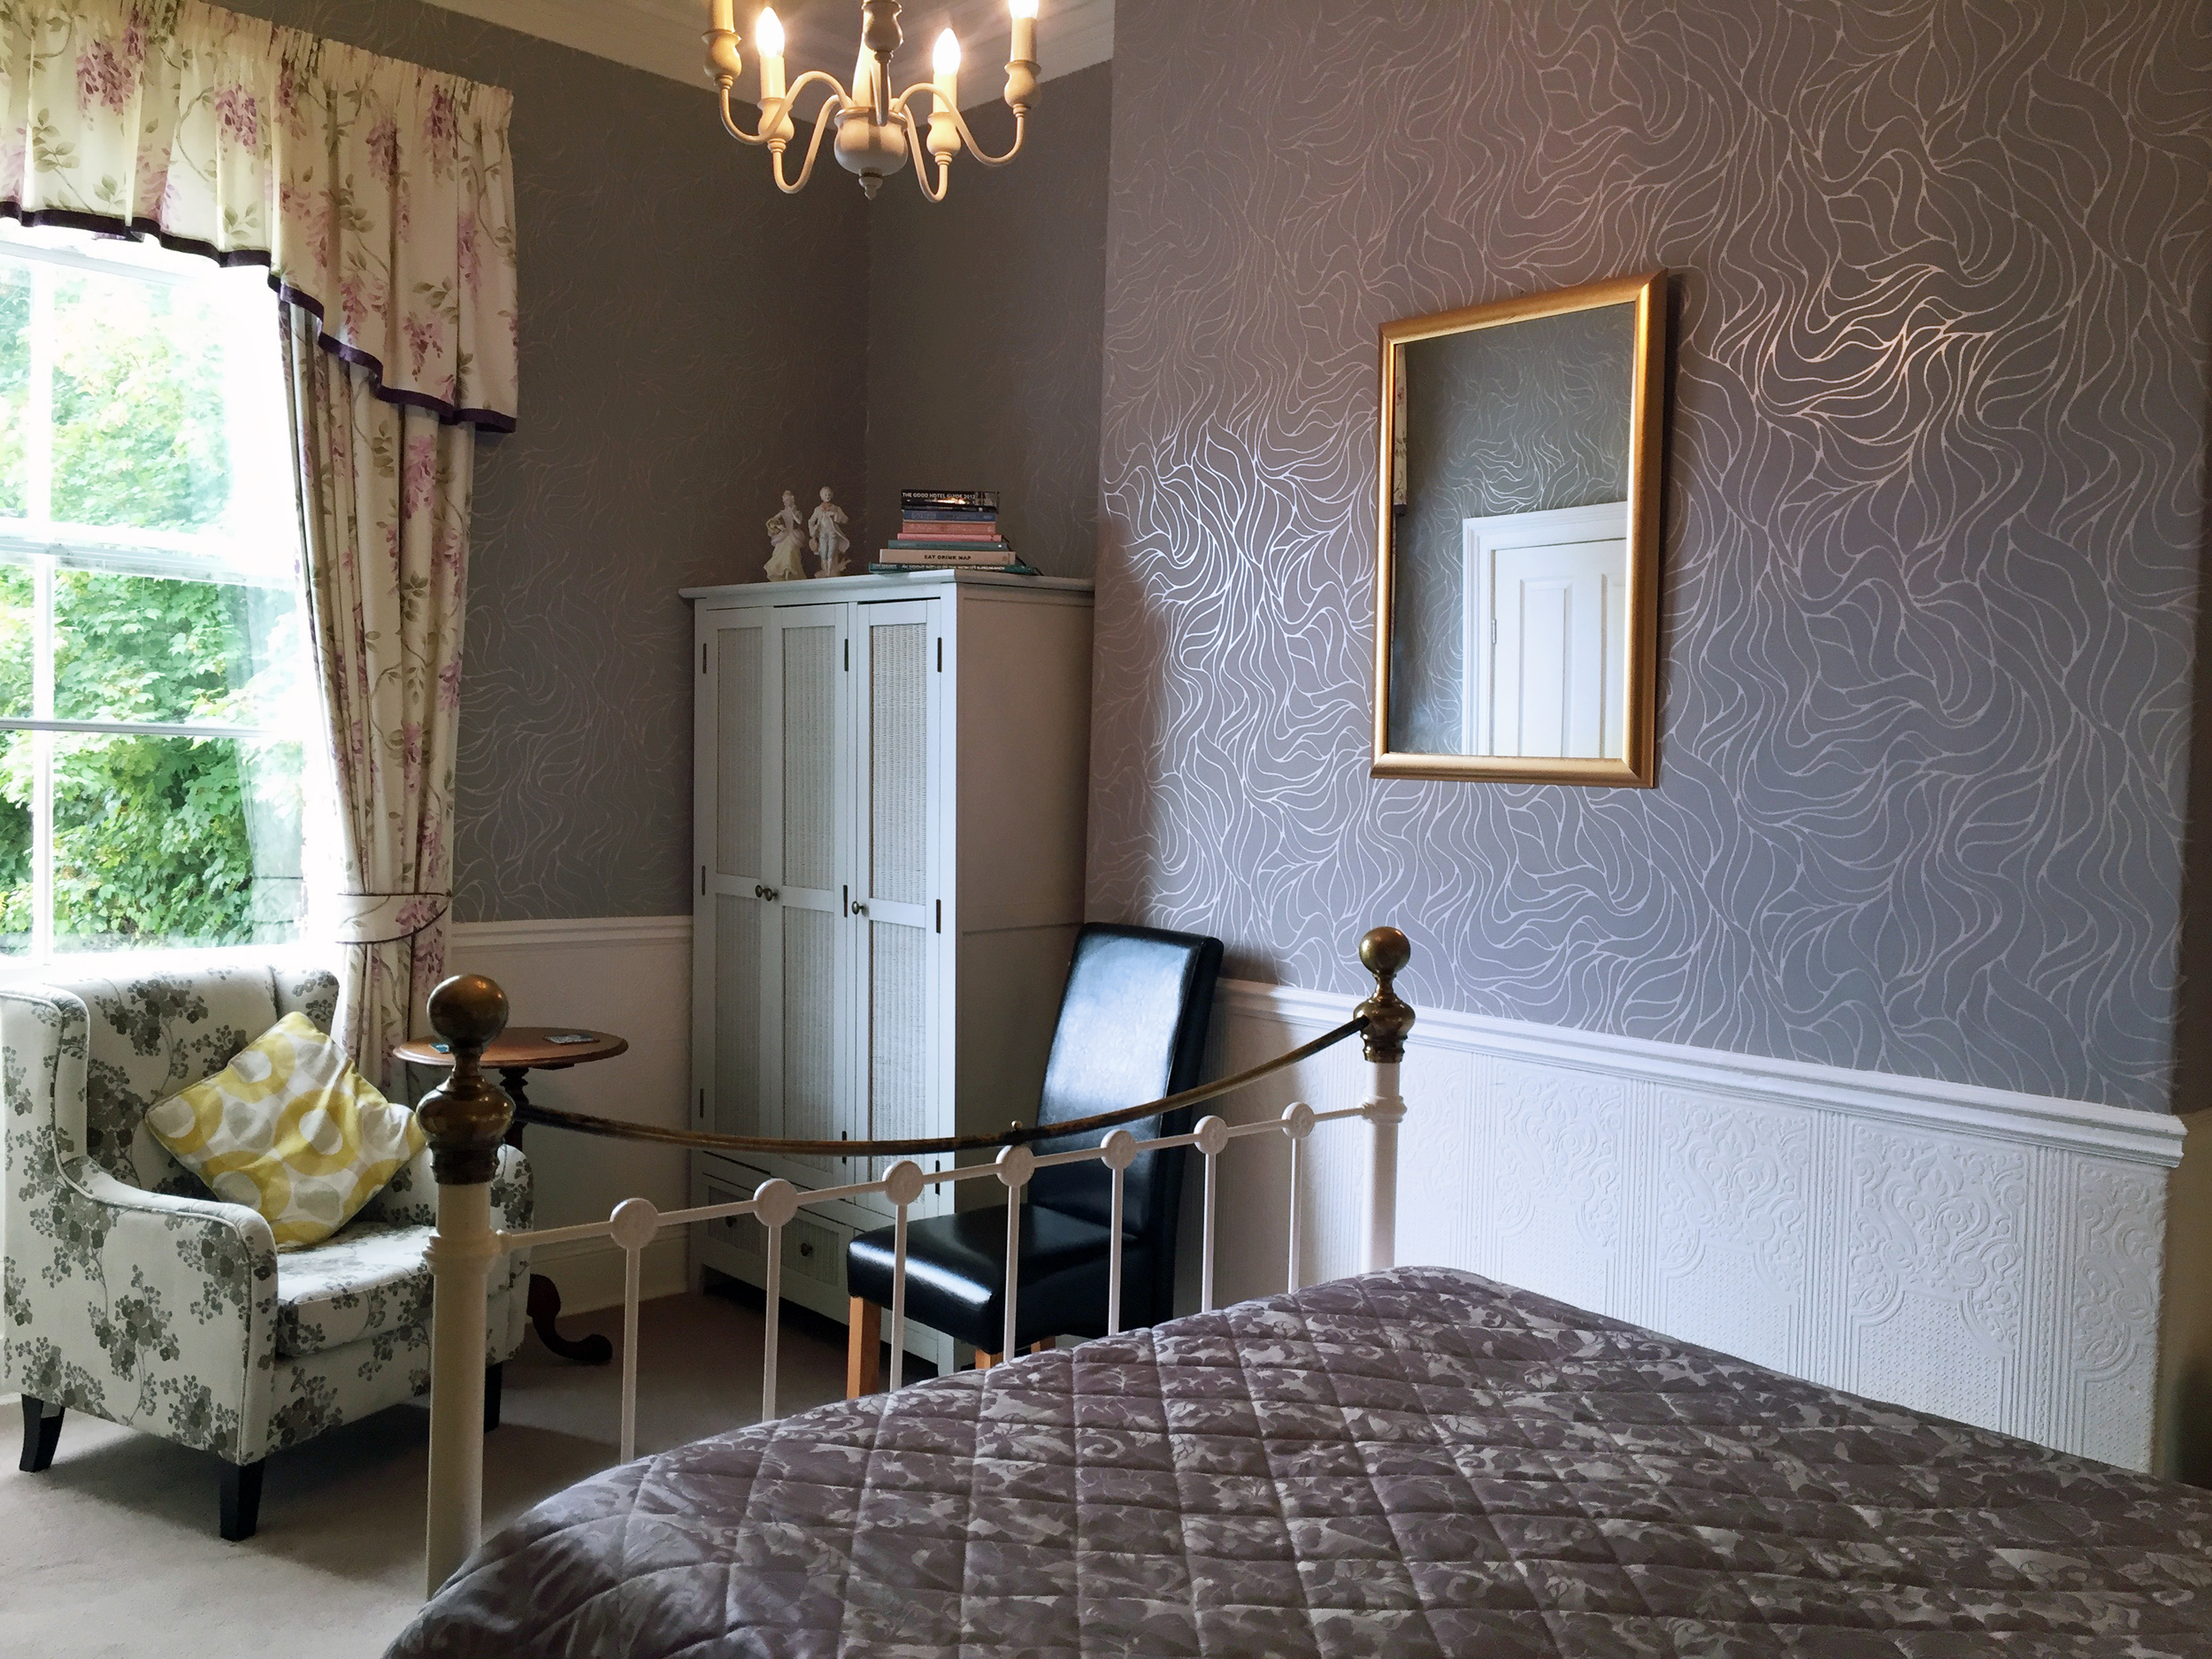 wisteria-superior-room-bed-and-breakfast-york